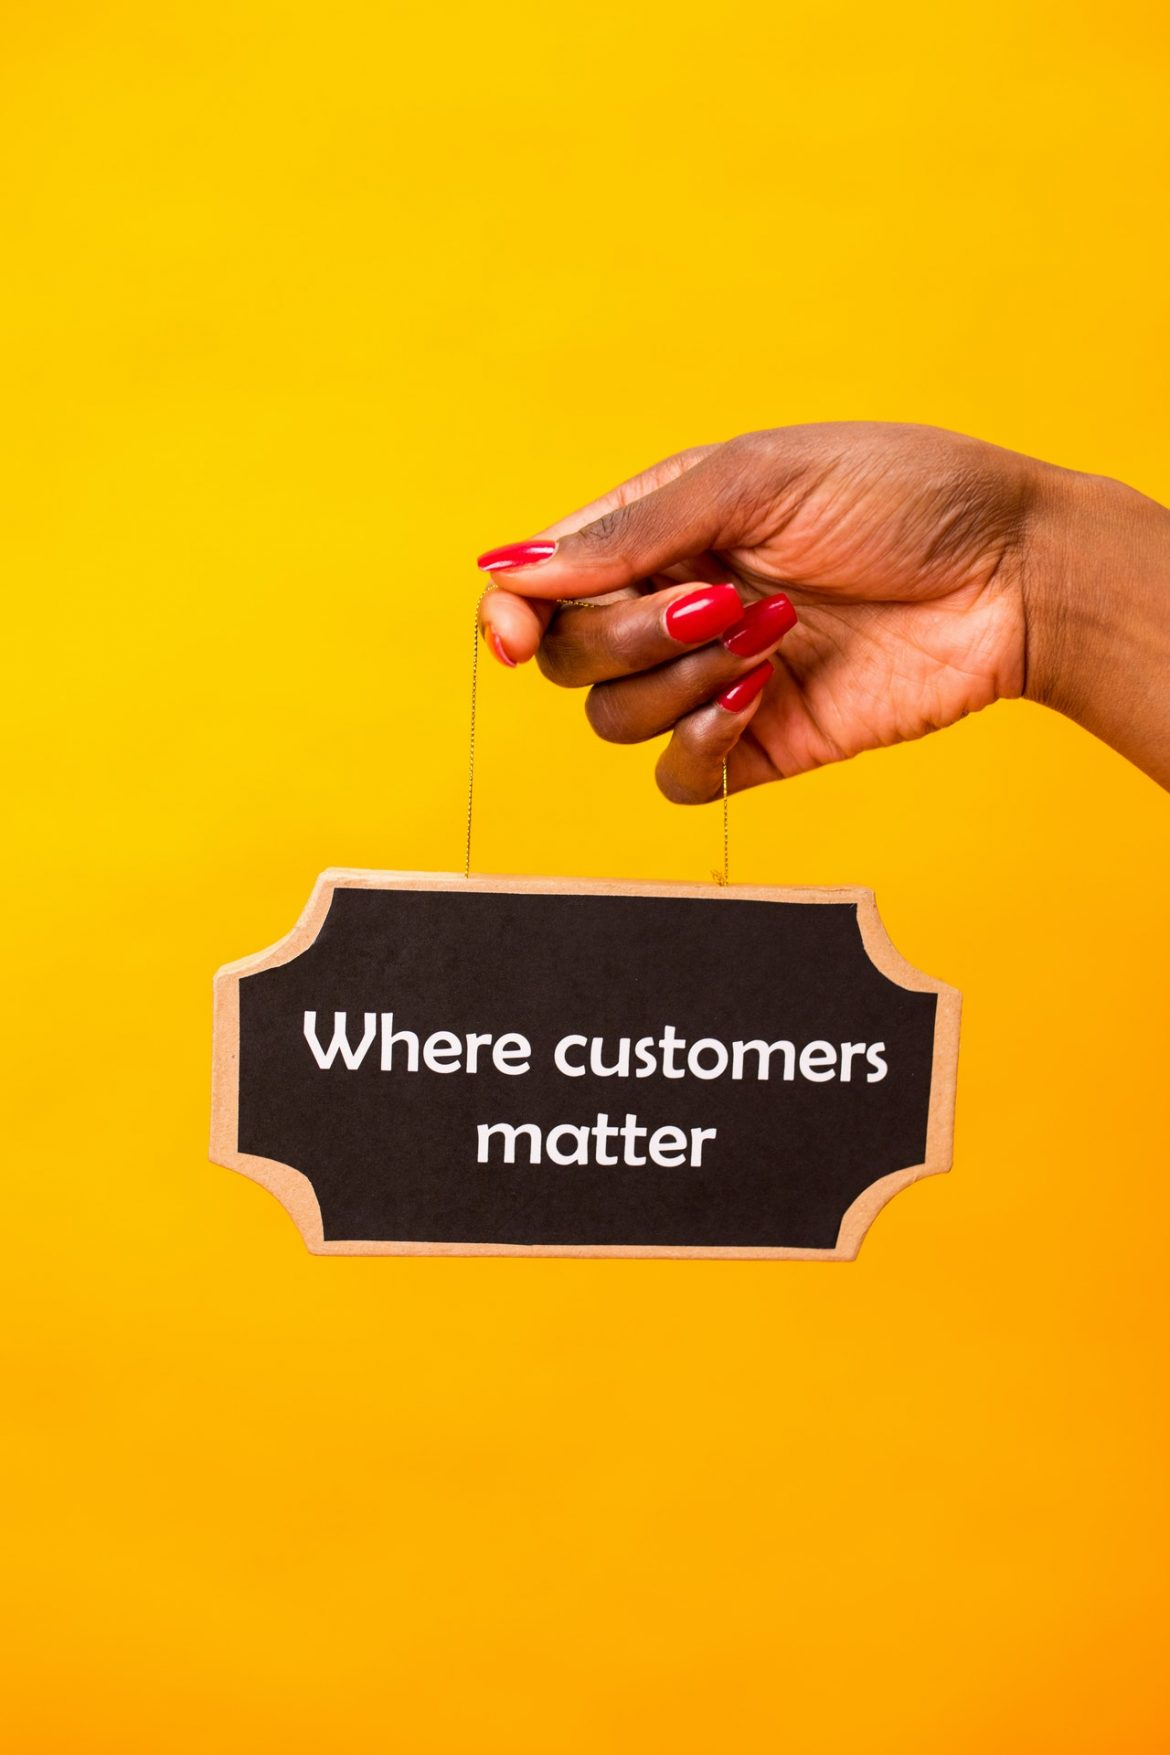 4 Things to Have That Will Protect Customers in Your New Store